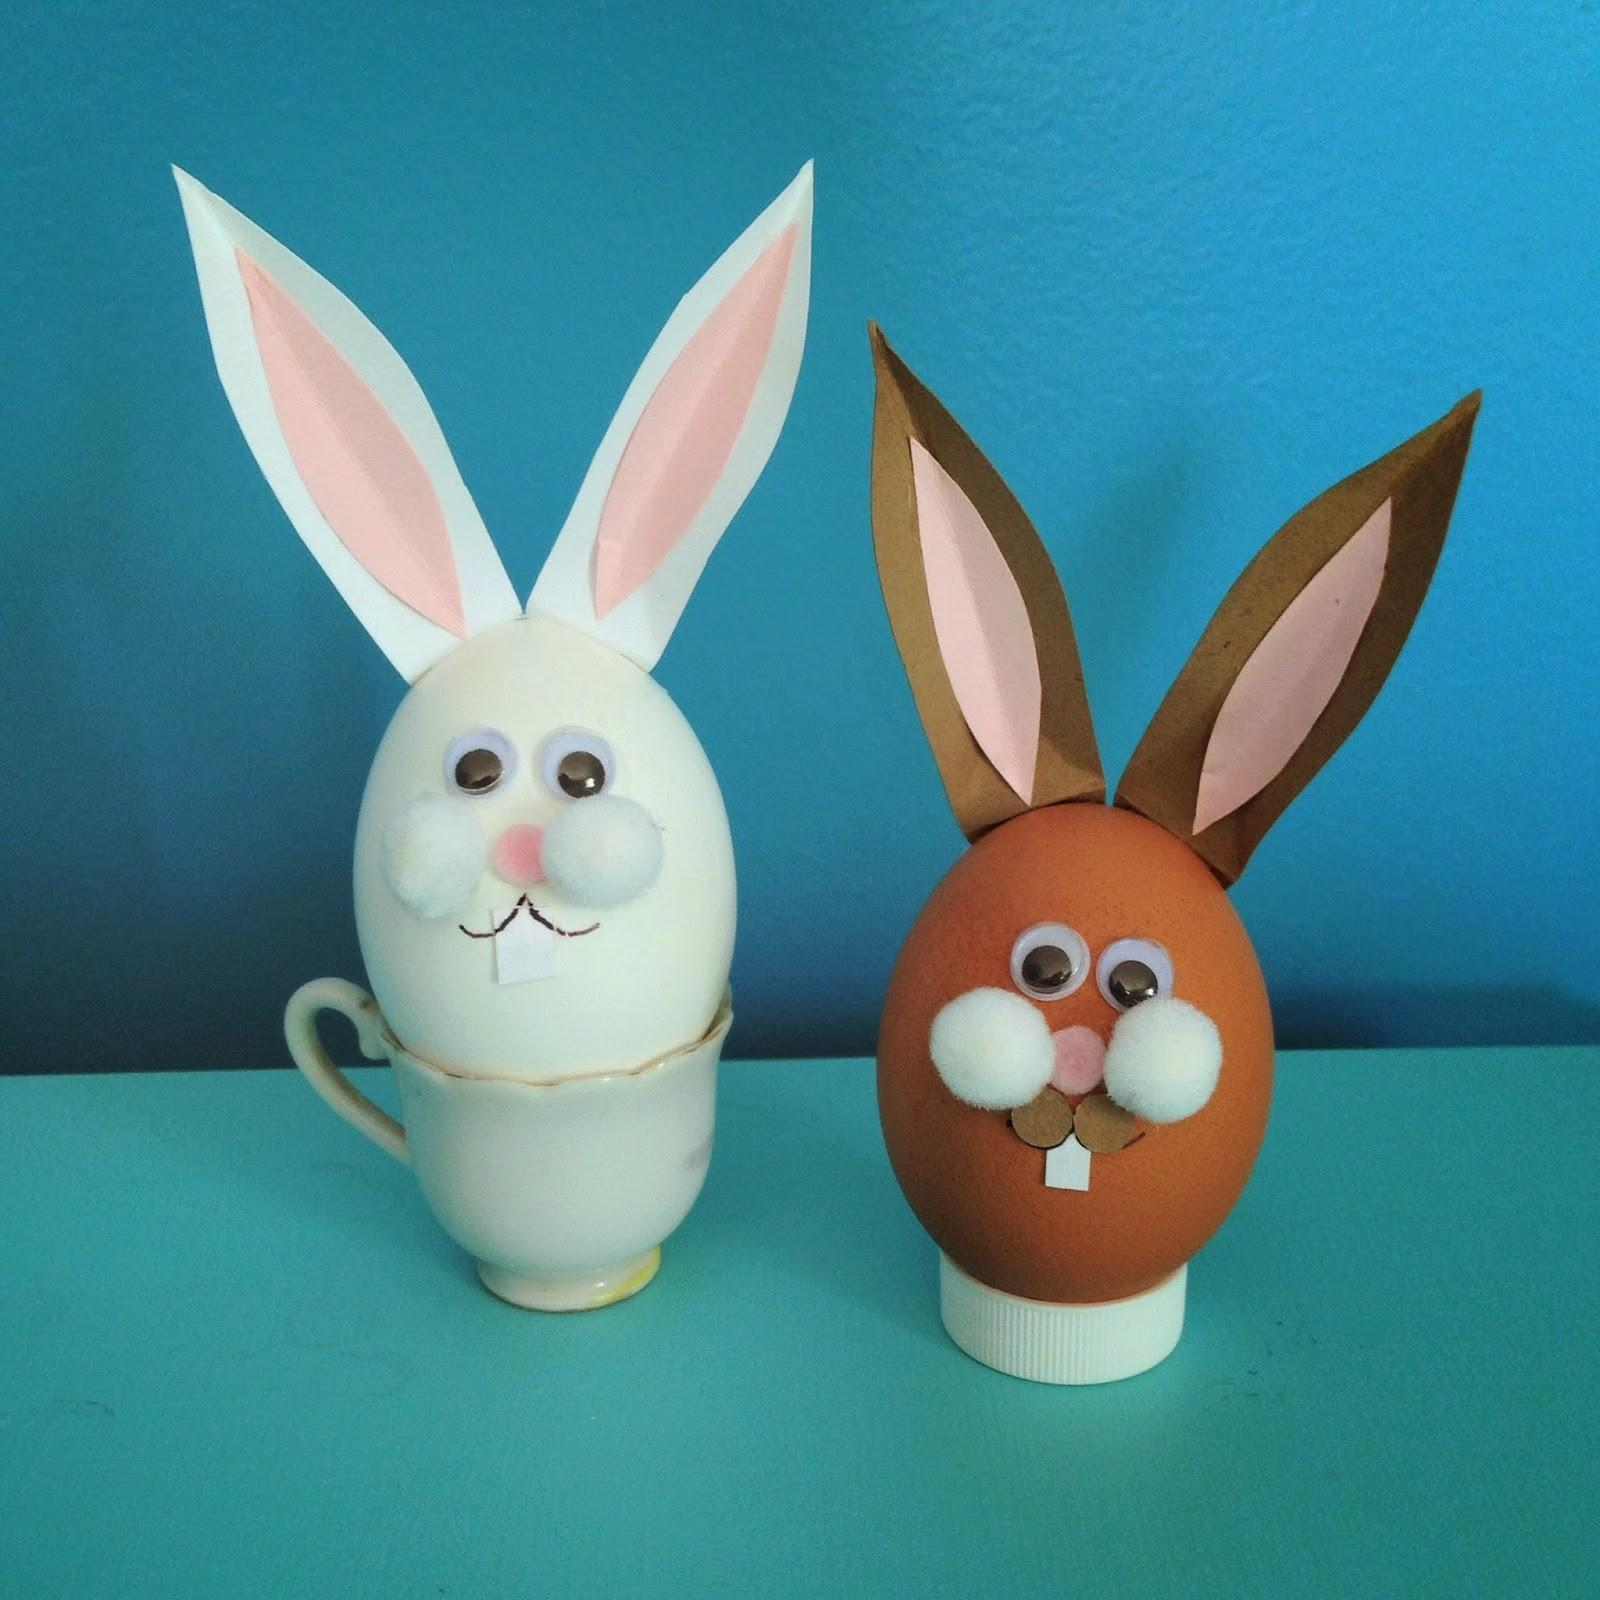 Kbb Crafts Stitches Easter Bunny Eggs